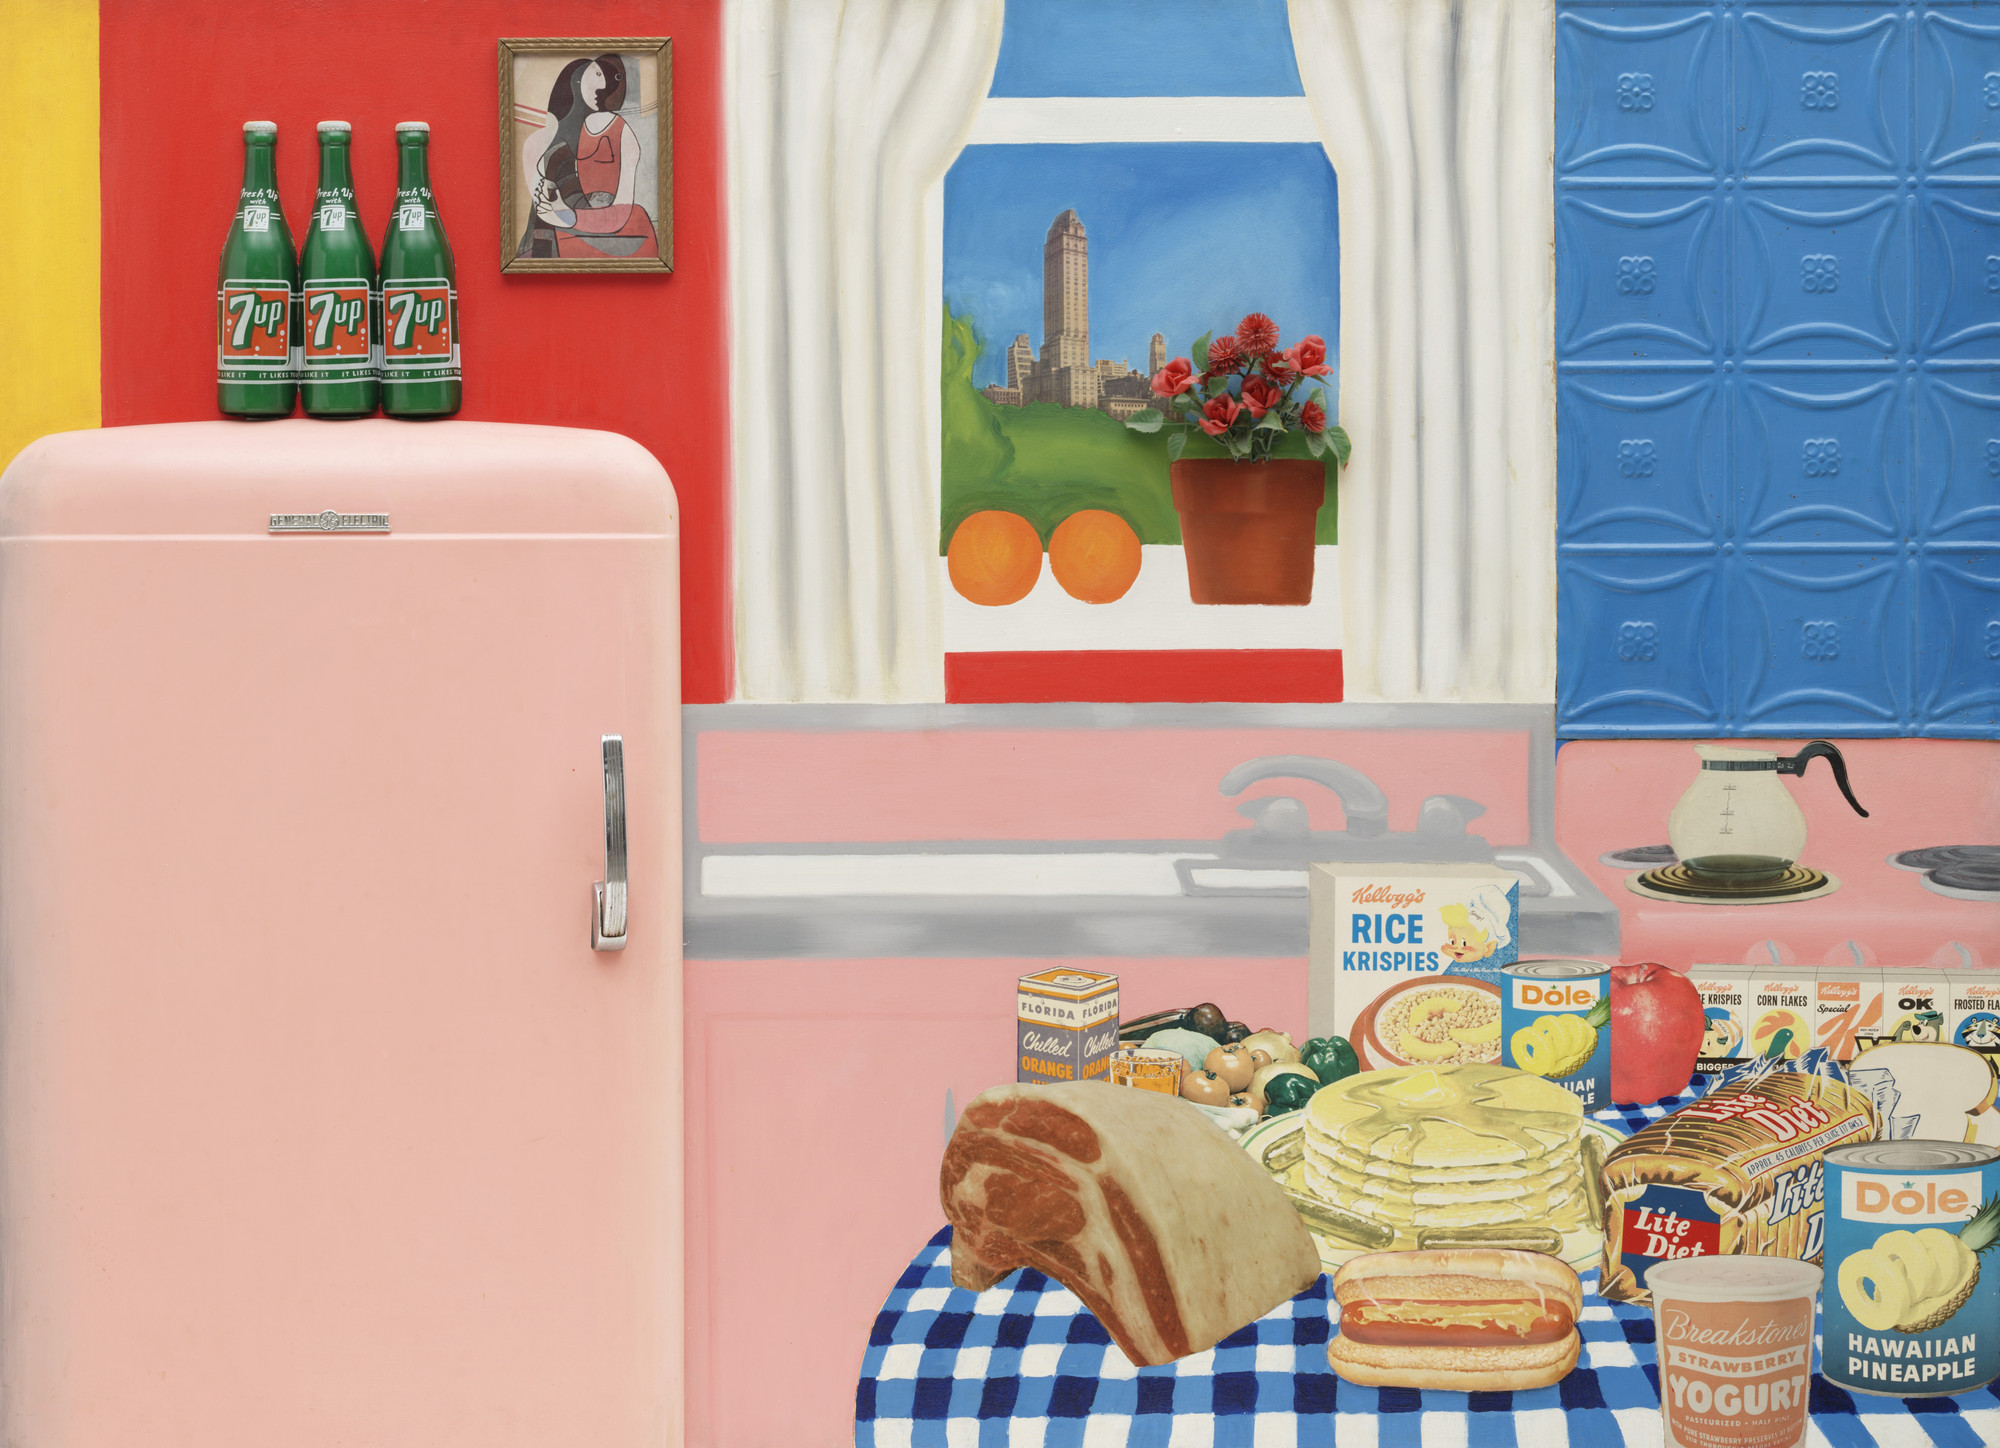 Tom Wesselmann. Still Life #30. April 1963